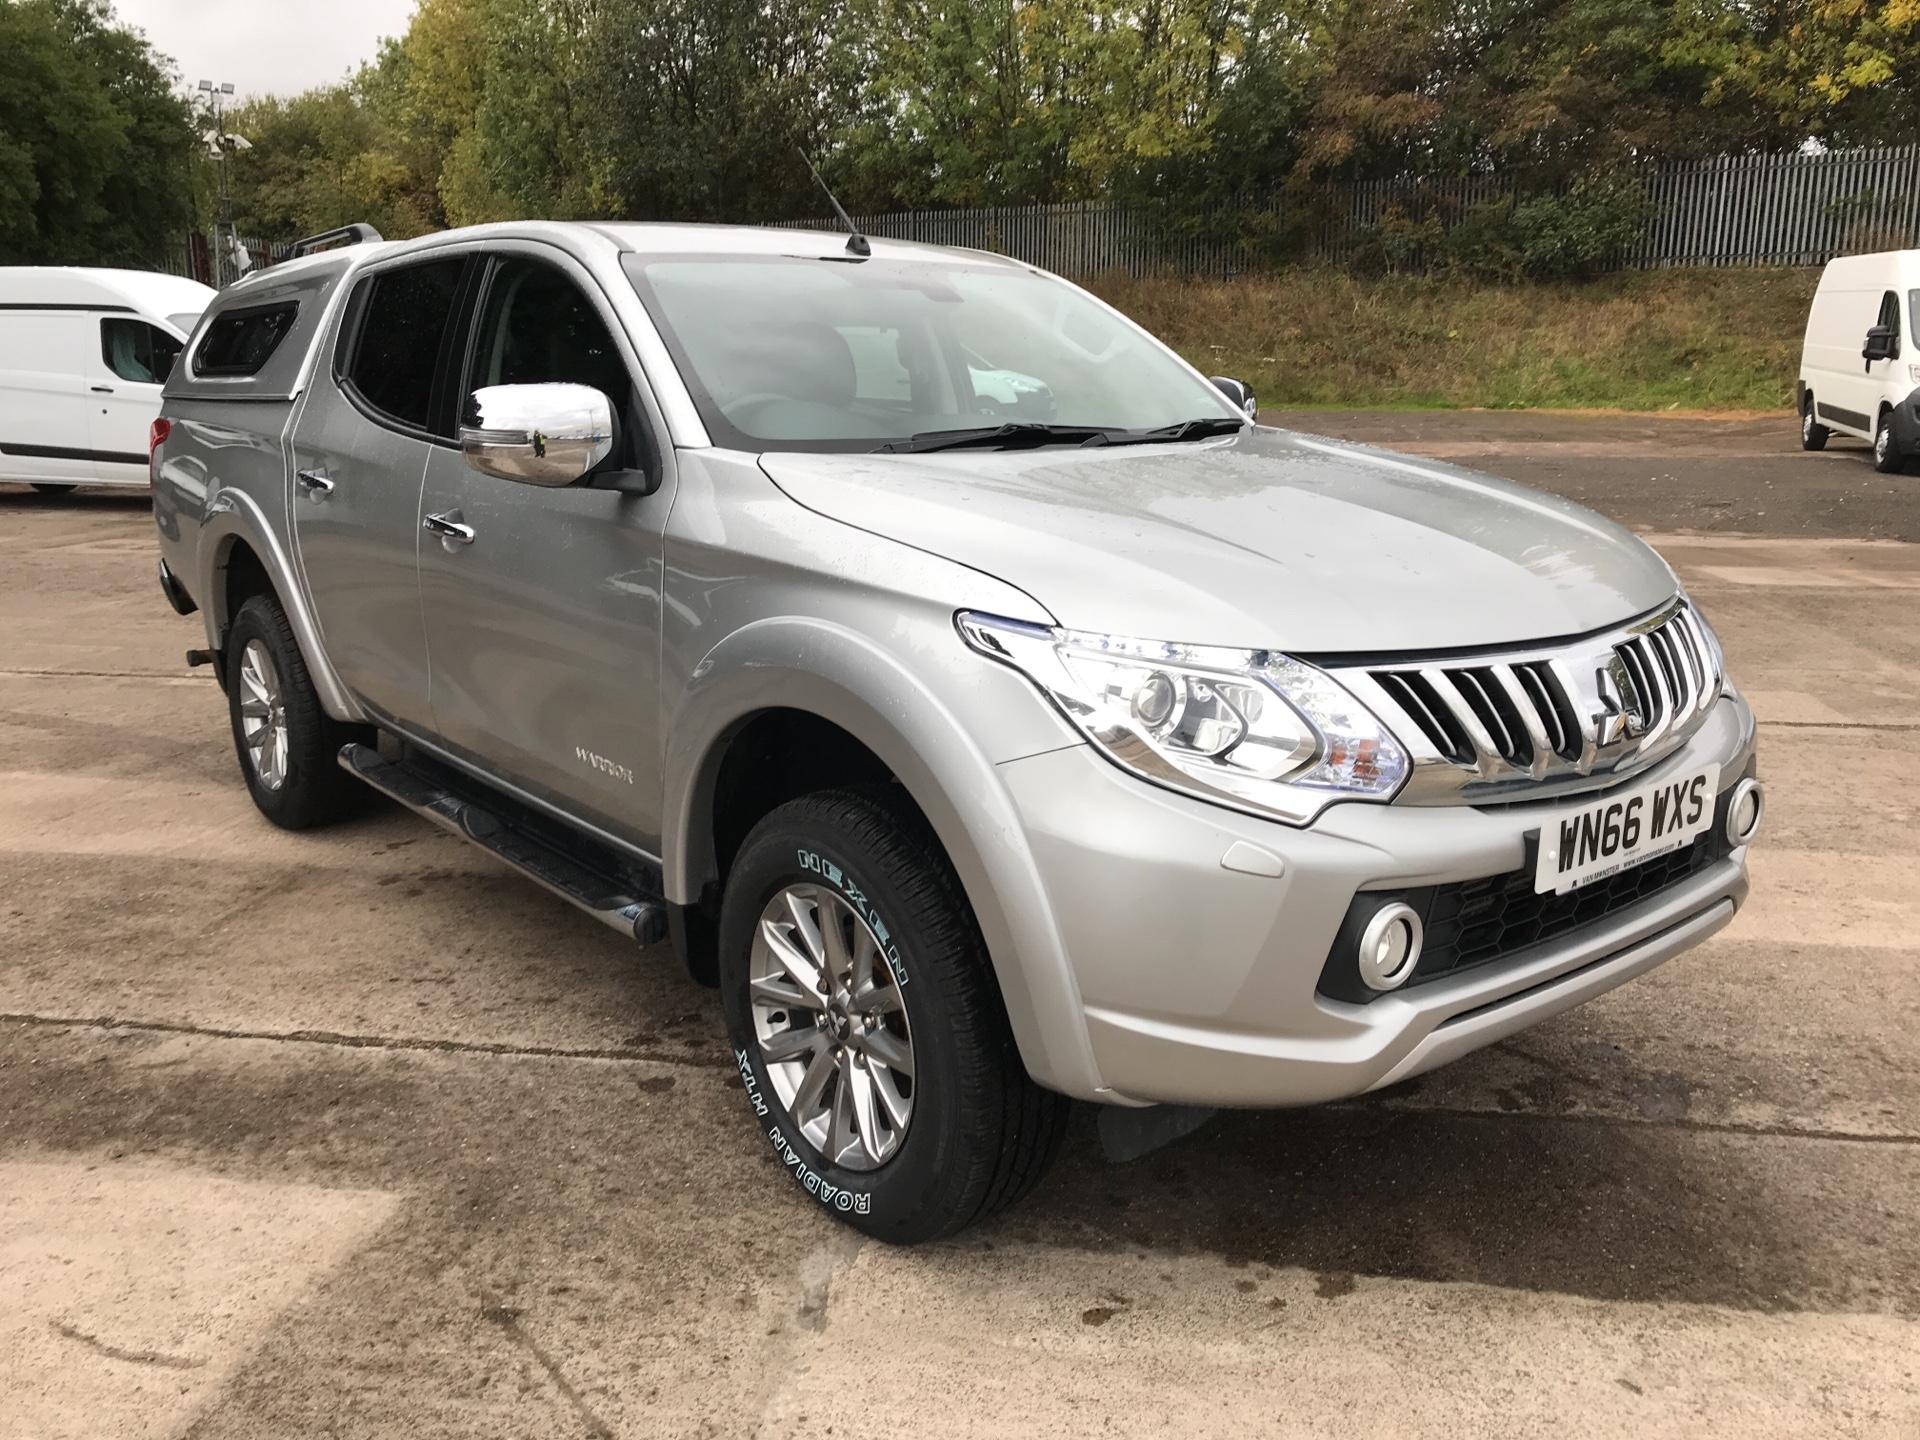 2016 Mitsubishi L200 DOUBLE CAB DI-D 178PS WARRIOR 4WD EURO 5 (WN66WXS)